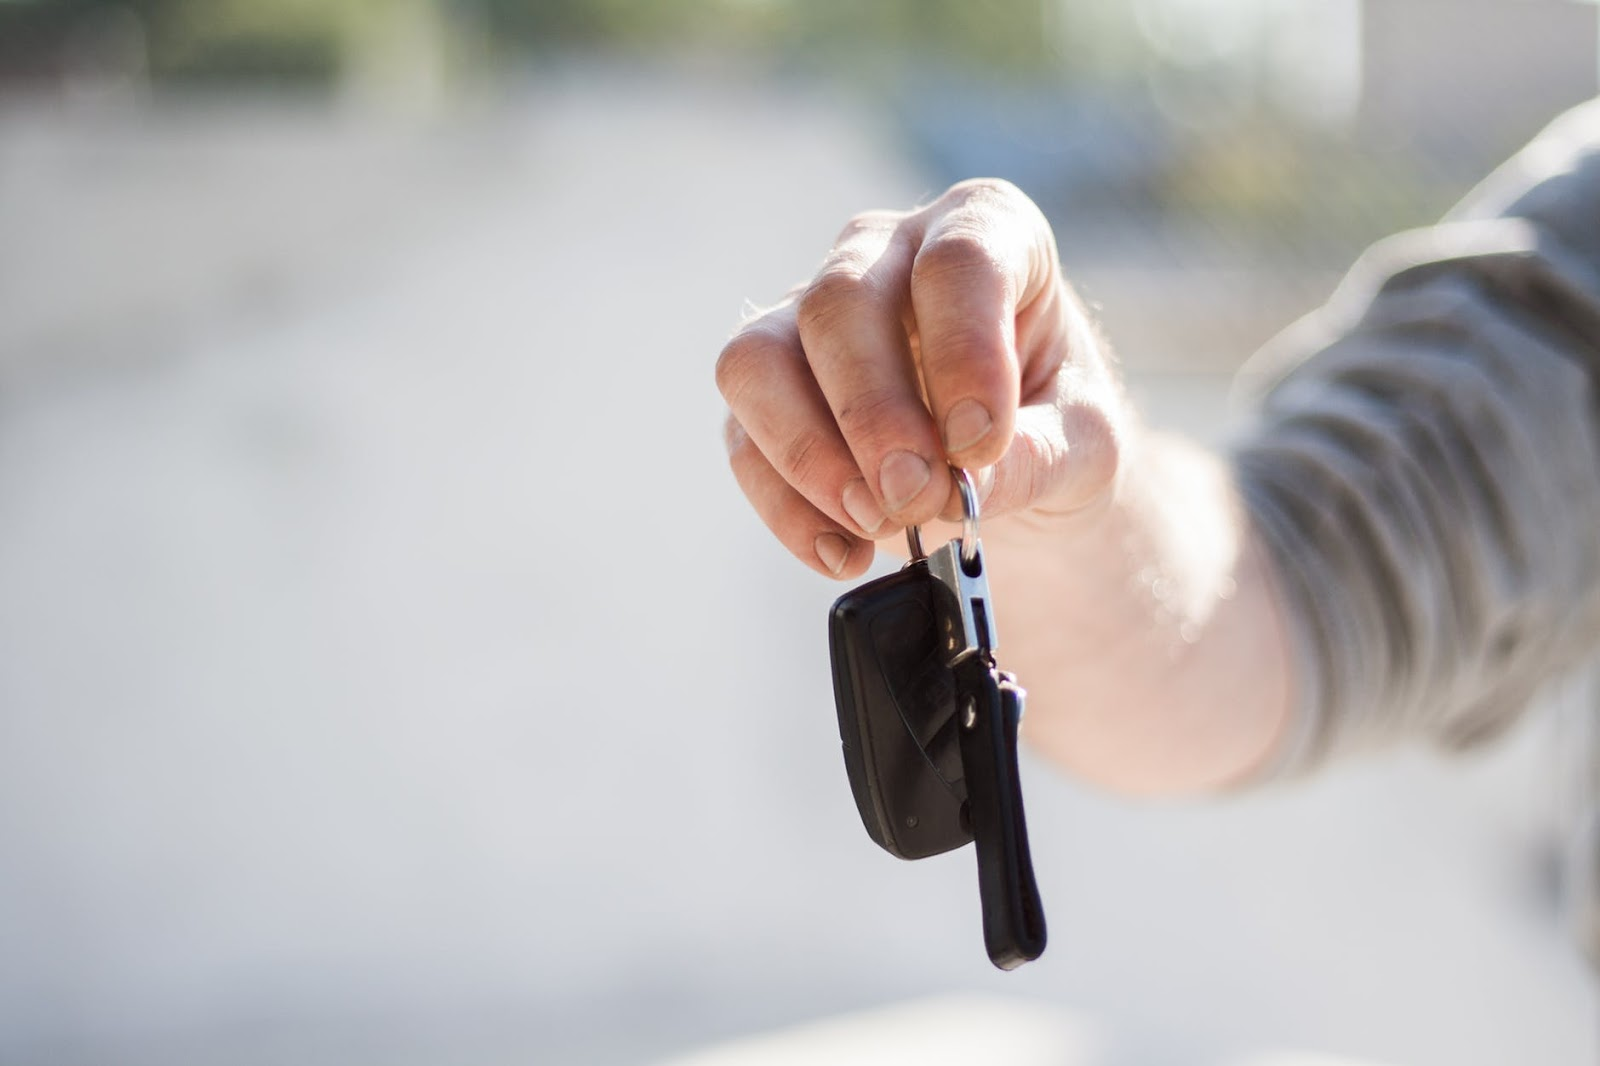 sell vehicles in private auctions with a wholesale dealer license